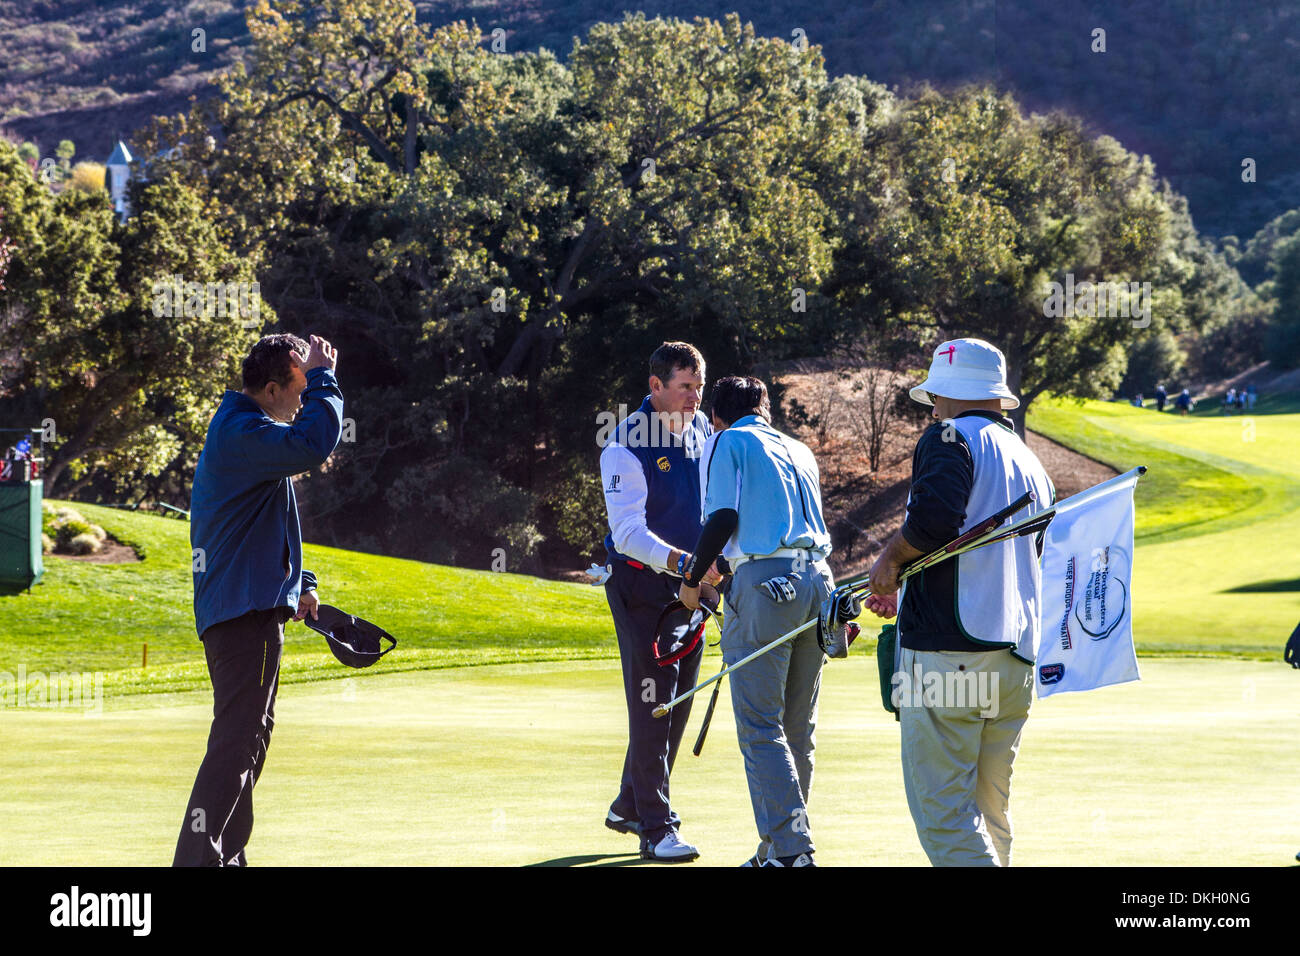 Lee Westwood at the 2013 Northwestern Mutual Challenge at Sherwood Country Club in Thousand Oaks California - Stock Image